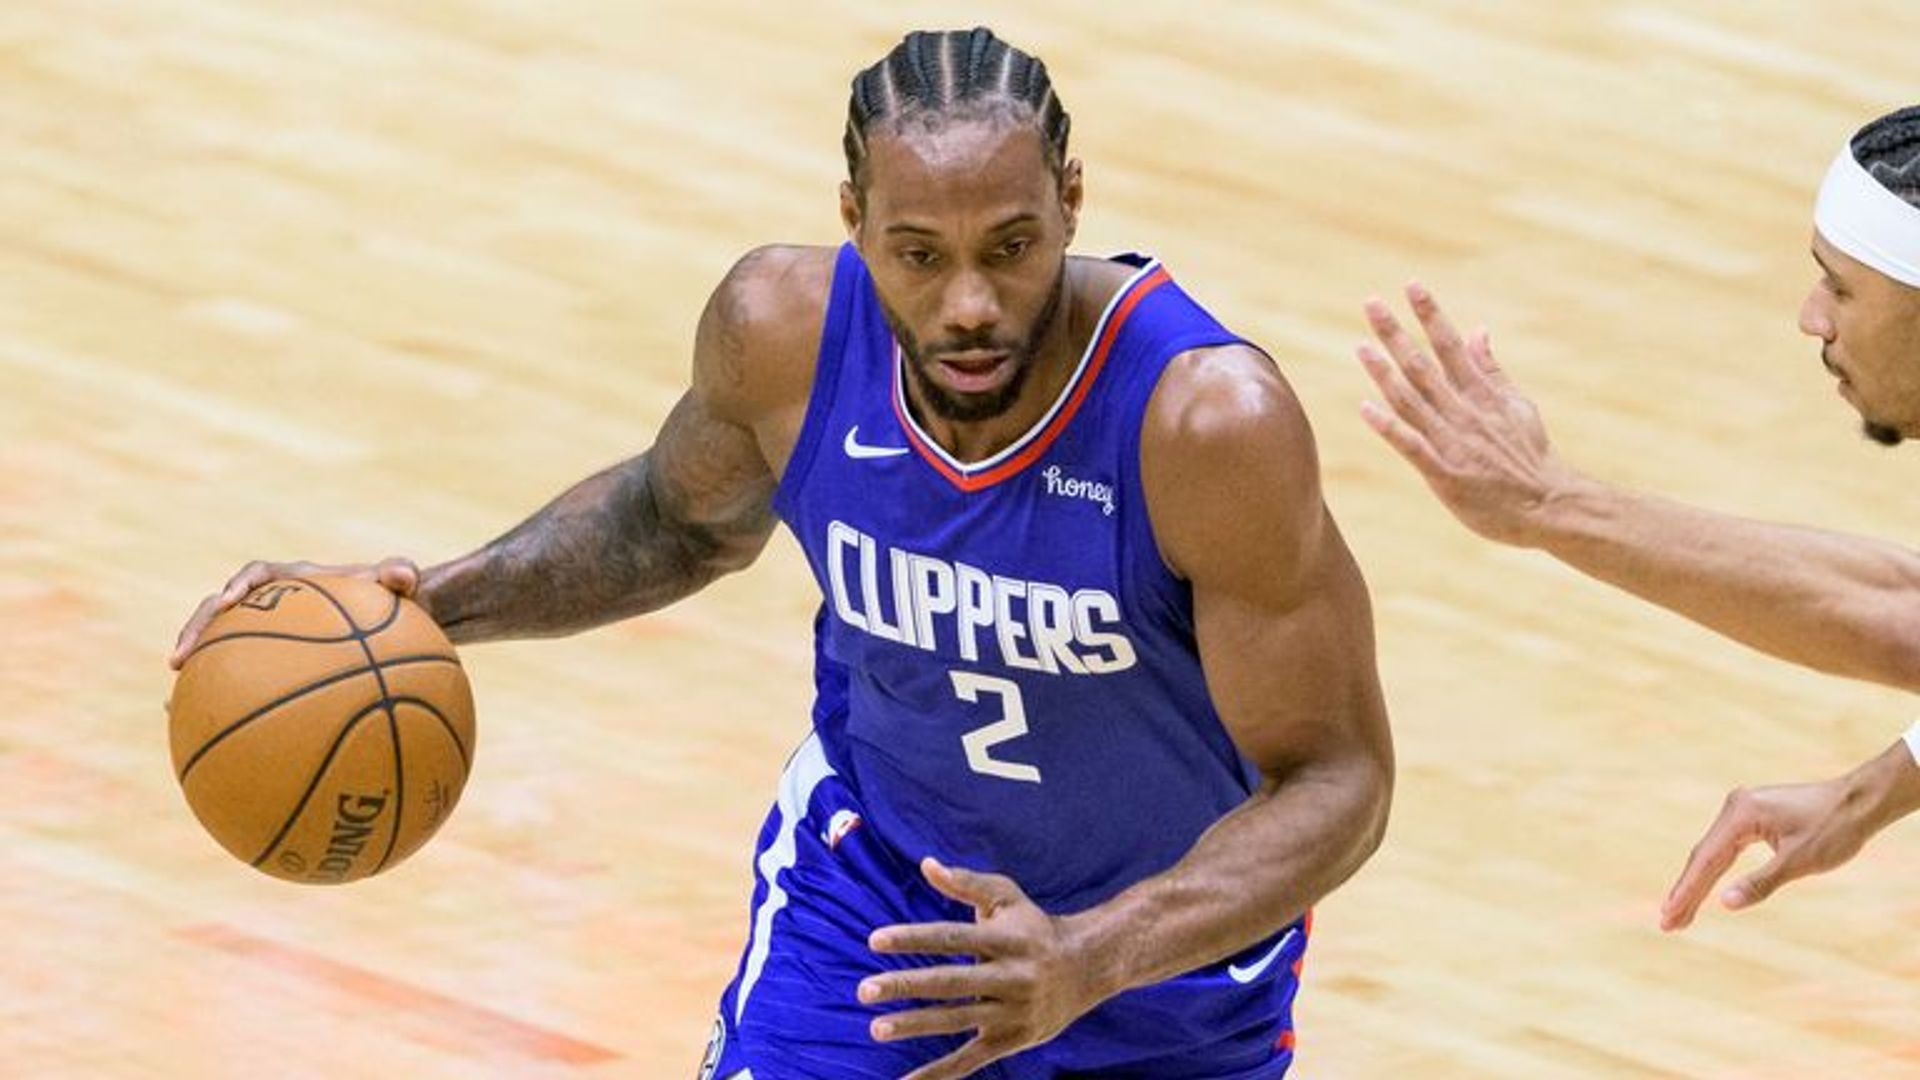 Dallas Looking For Upset Win in Rematch With Clippers